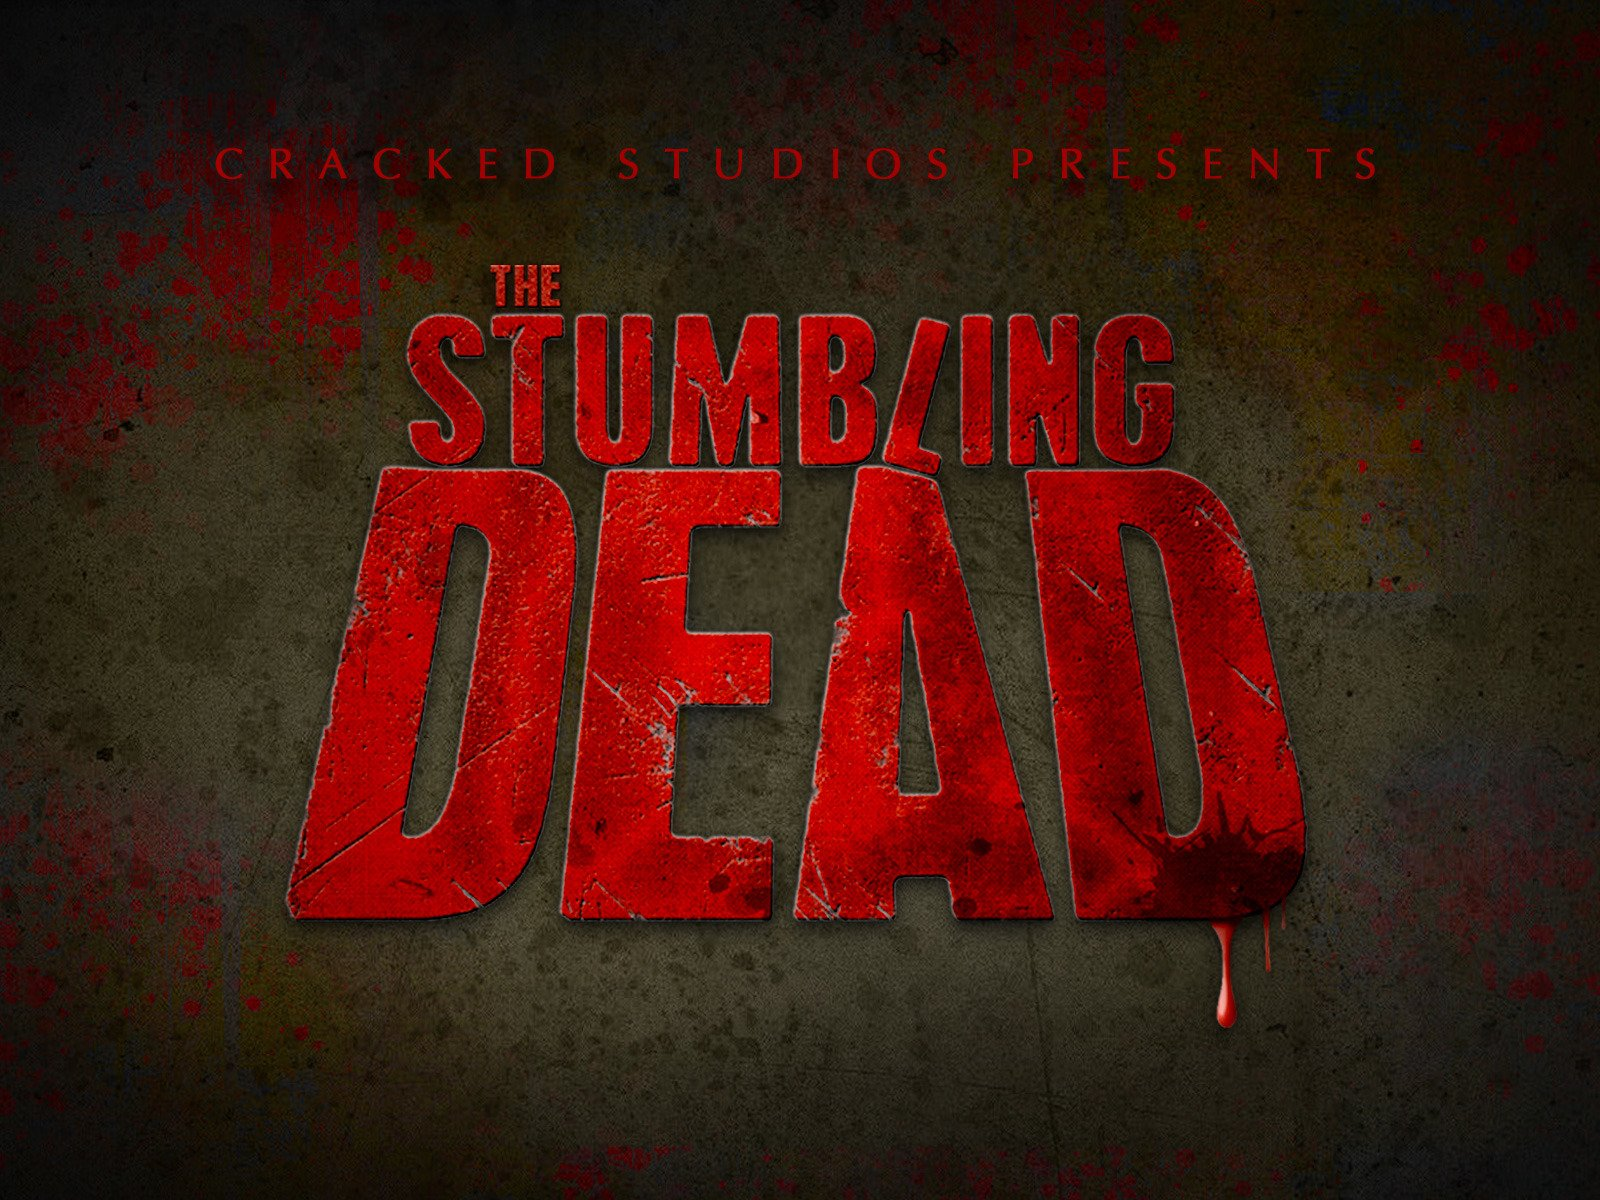 The Stumbling Dead